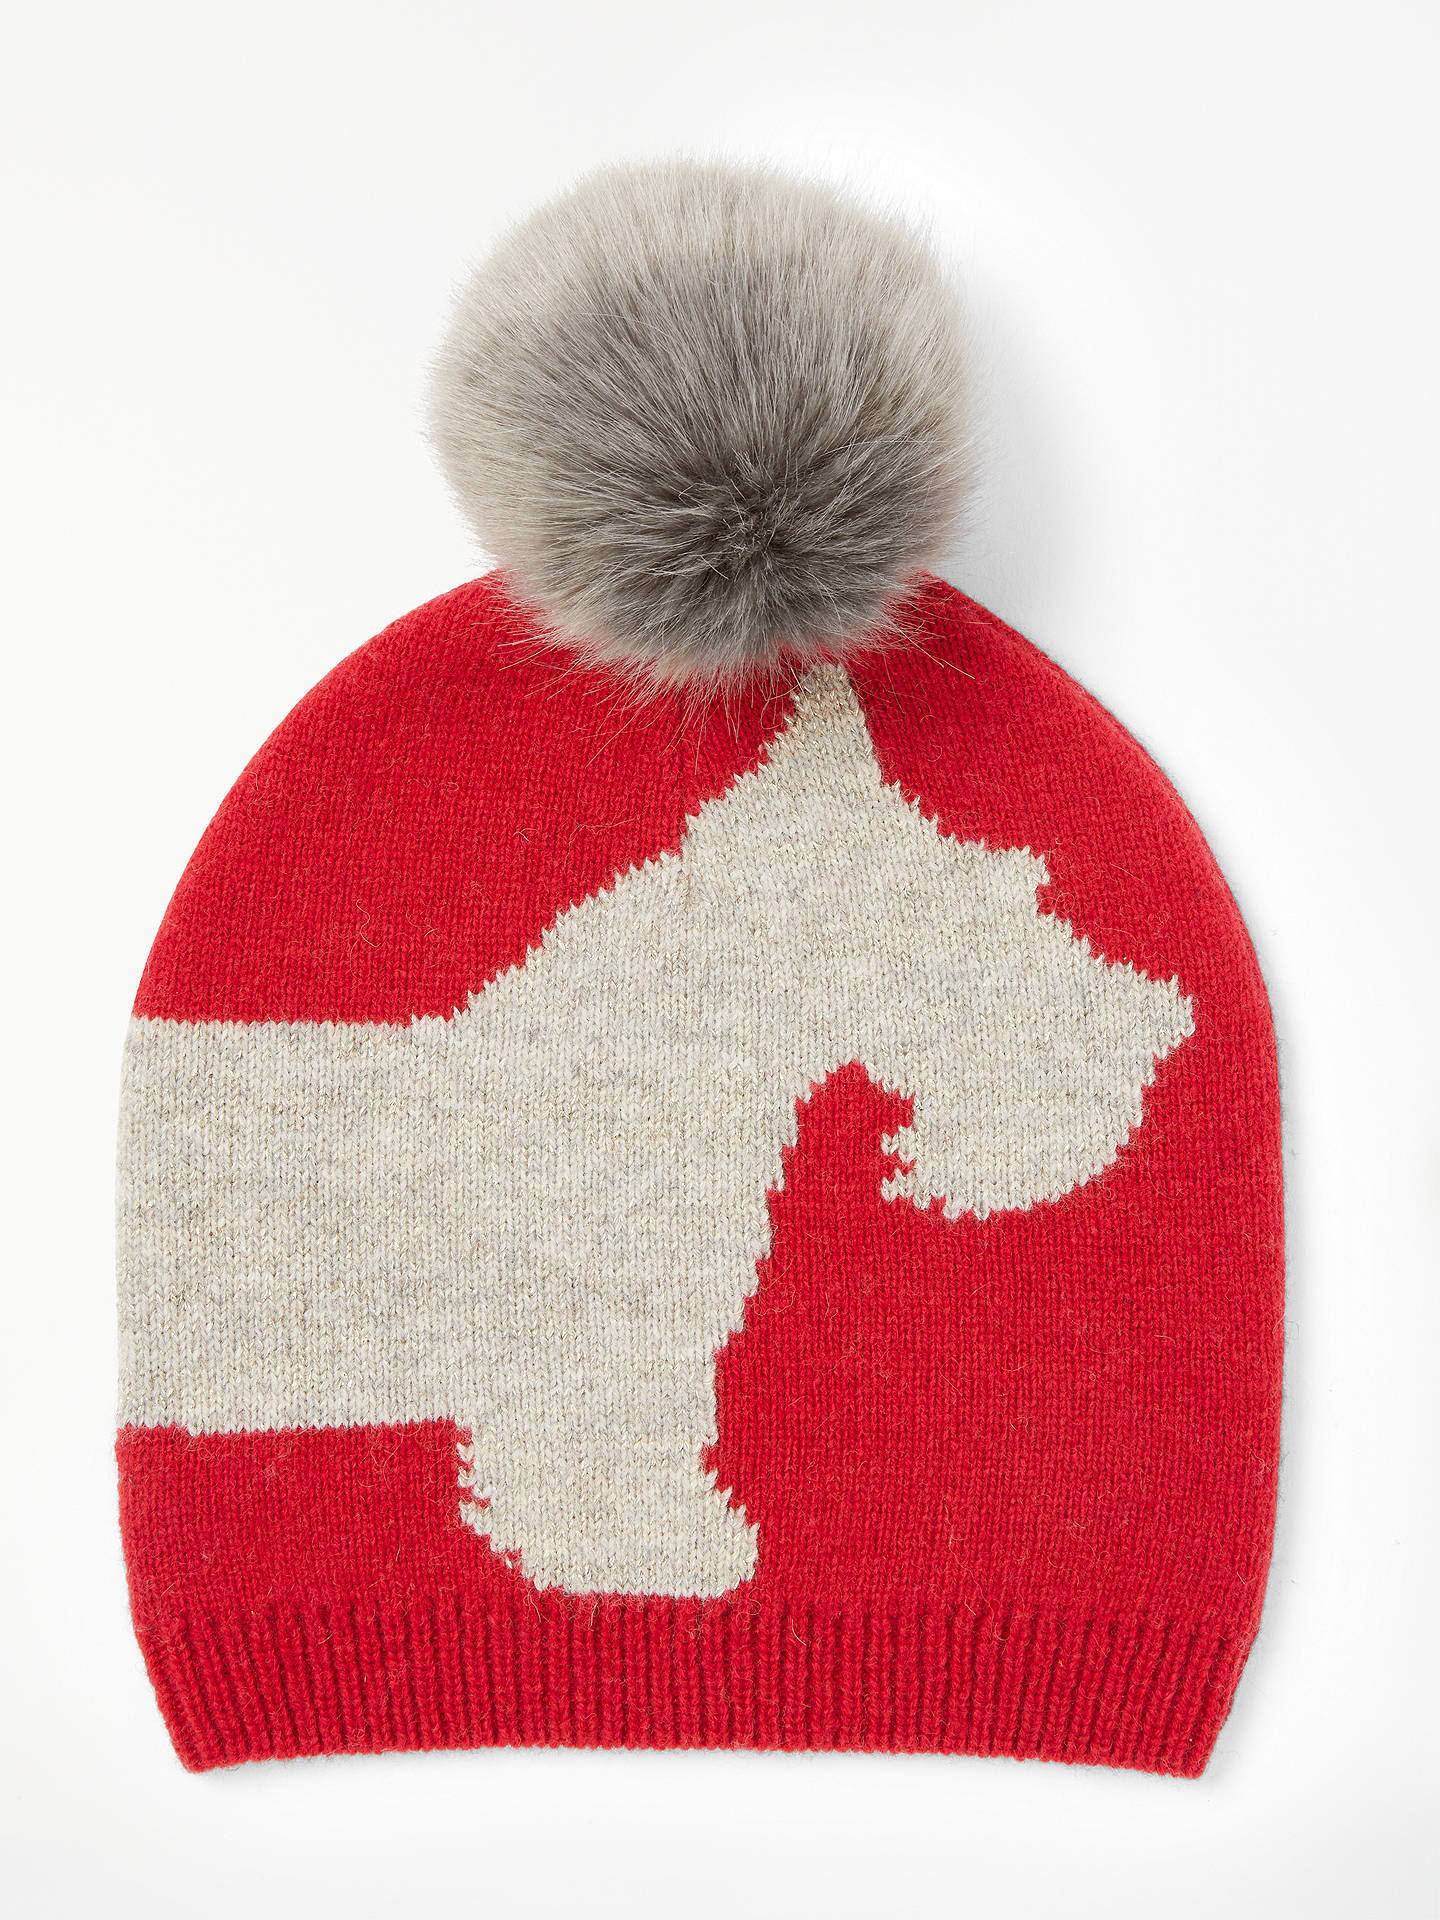 BuyCollection WEEKEND by John Lewis Scotty Dog Print Faux Fur Pom Beanie  Hat 4ee31e7f25e